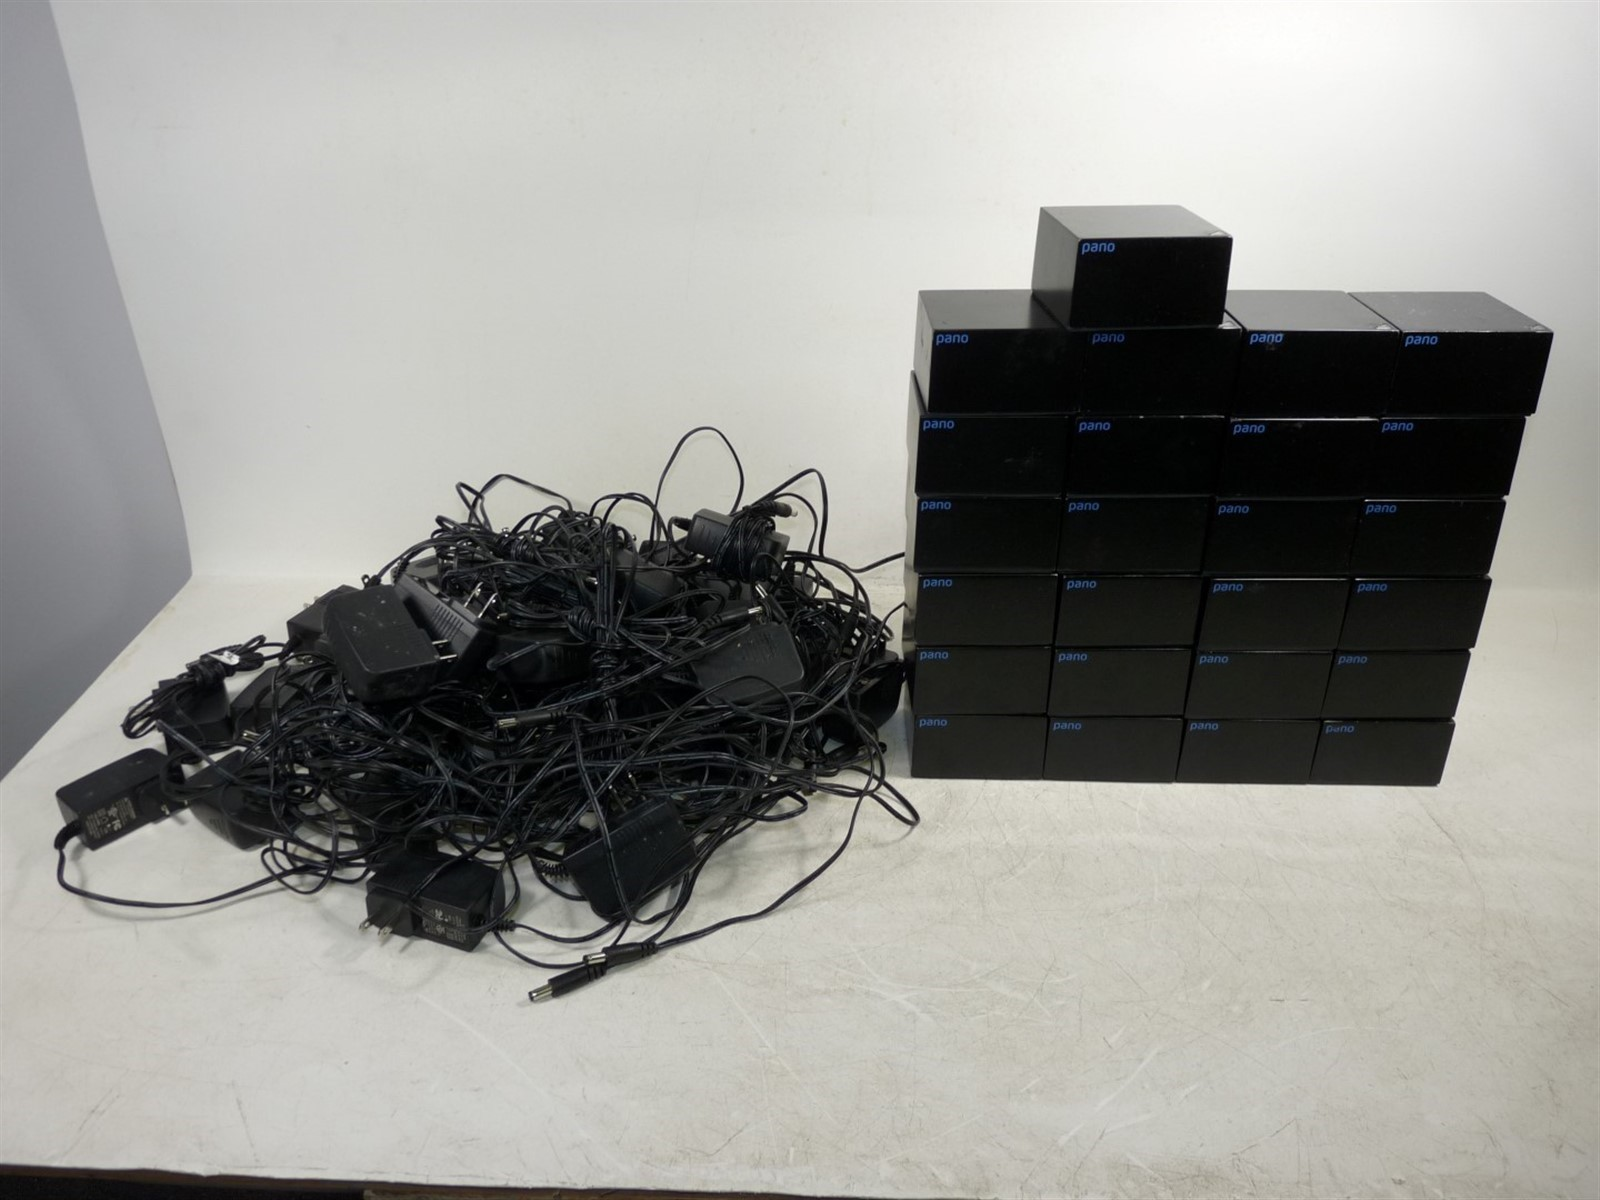 Lot Of 25 Pano Logic Thin Zero Desktop Client Black W Supply Used